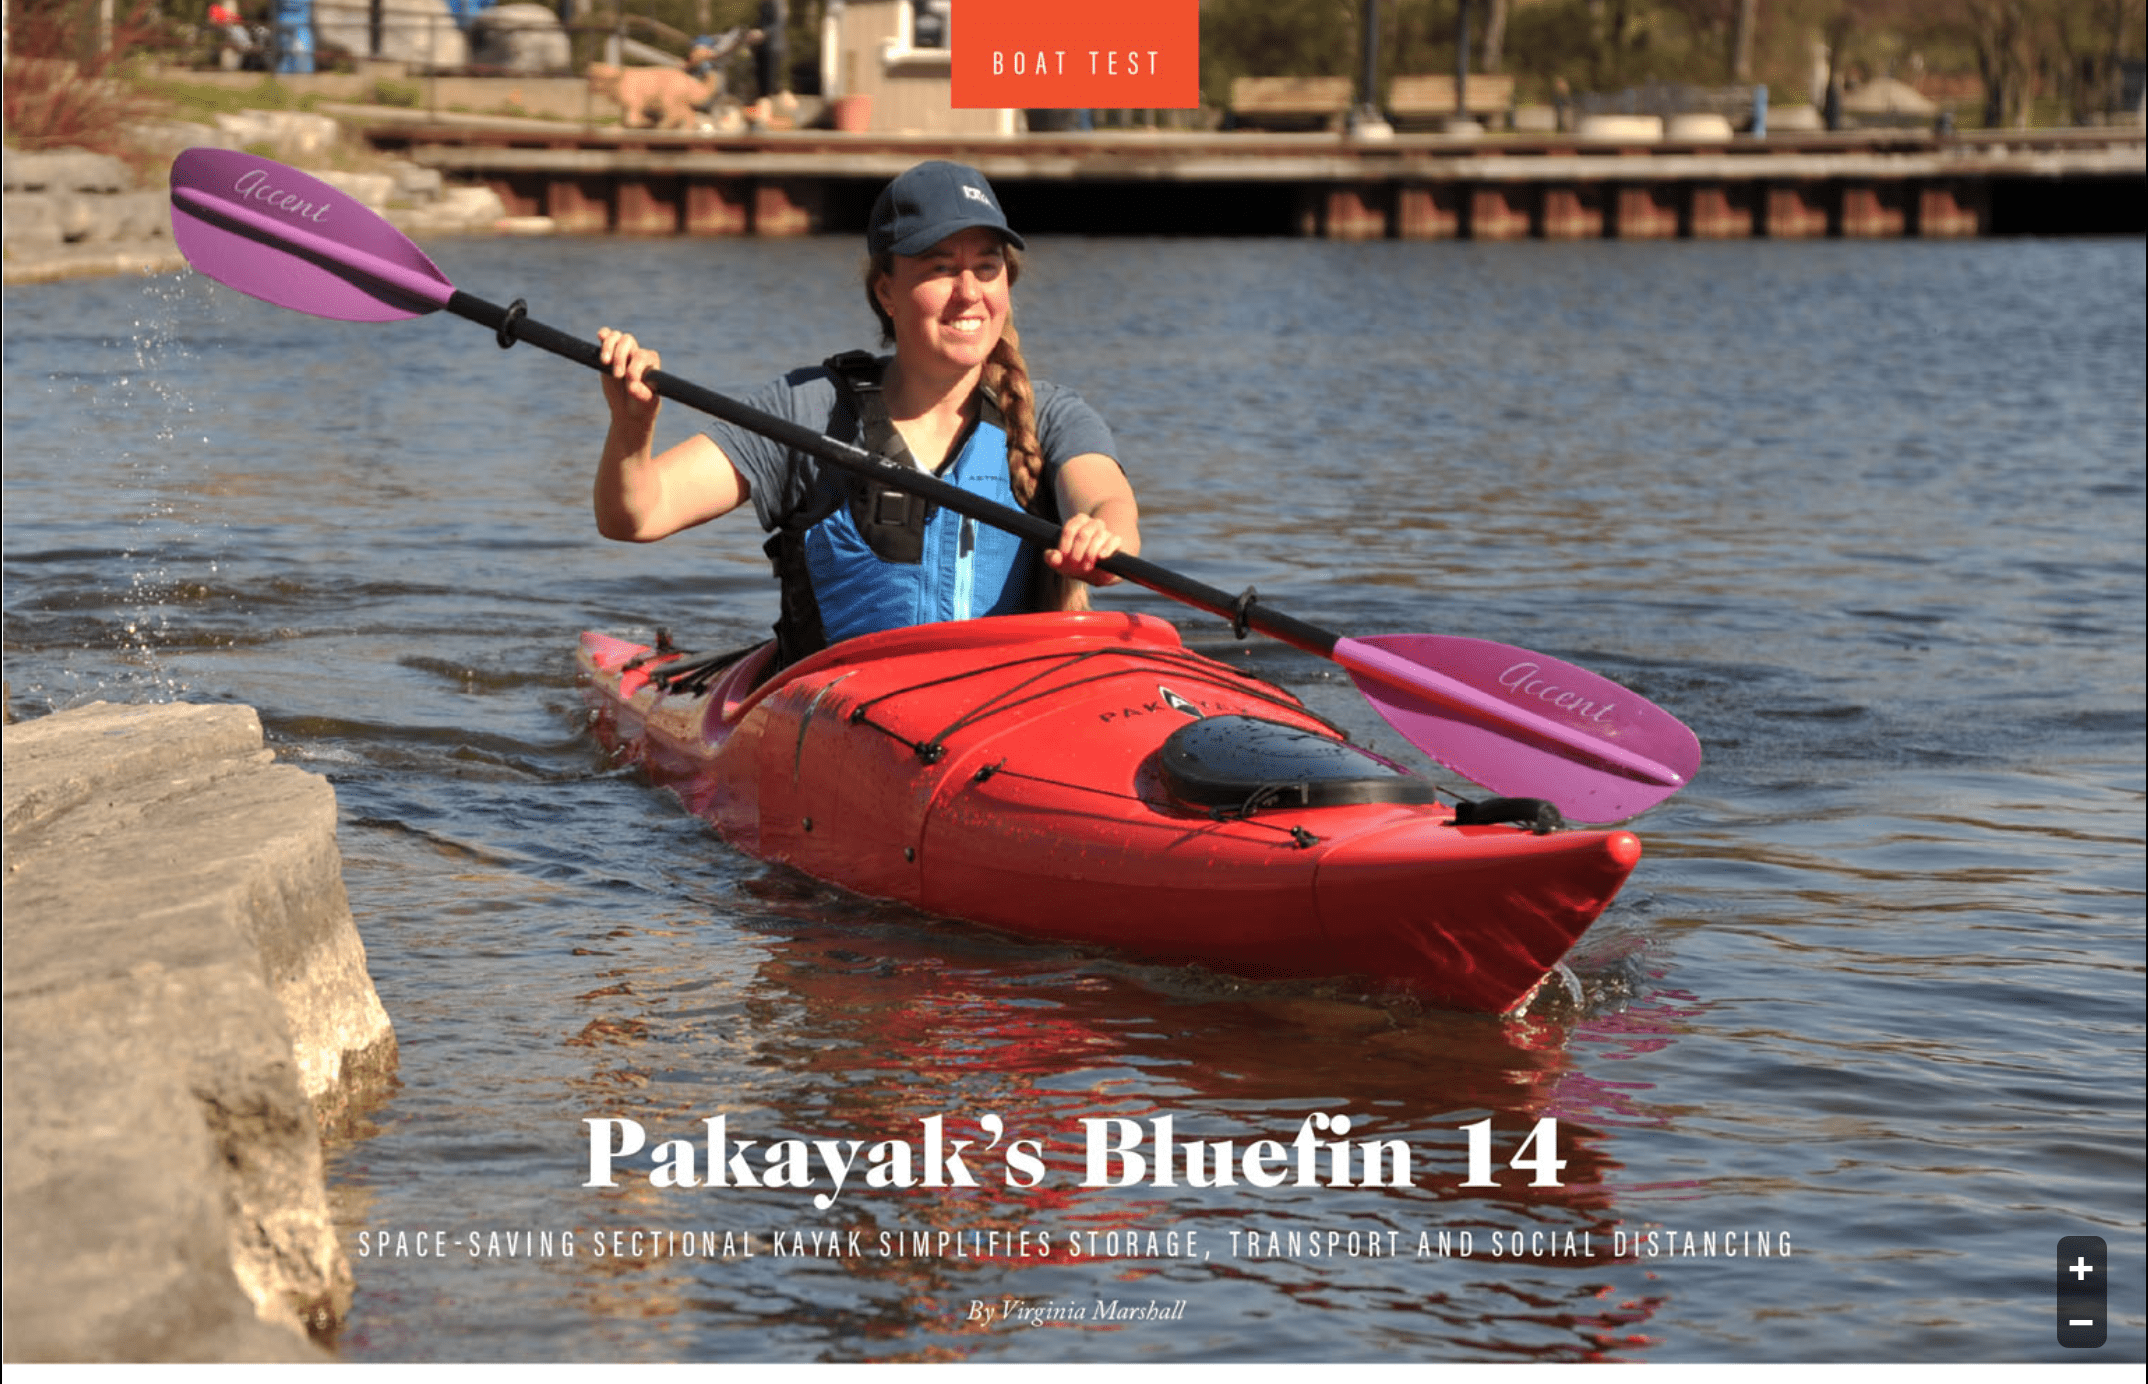 Paddling Magazine: Space-saving sectional kayak simplifies storage, transport and social distancing